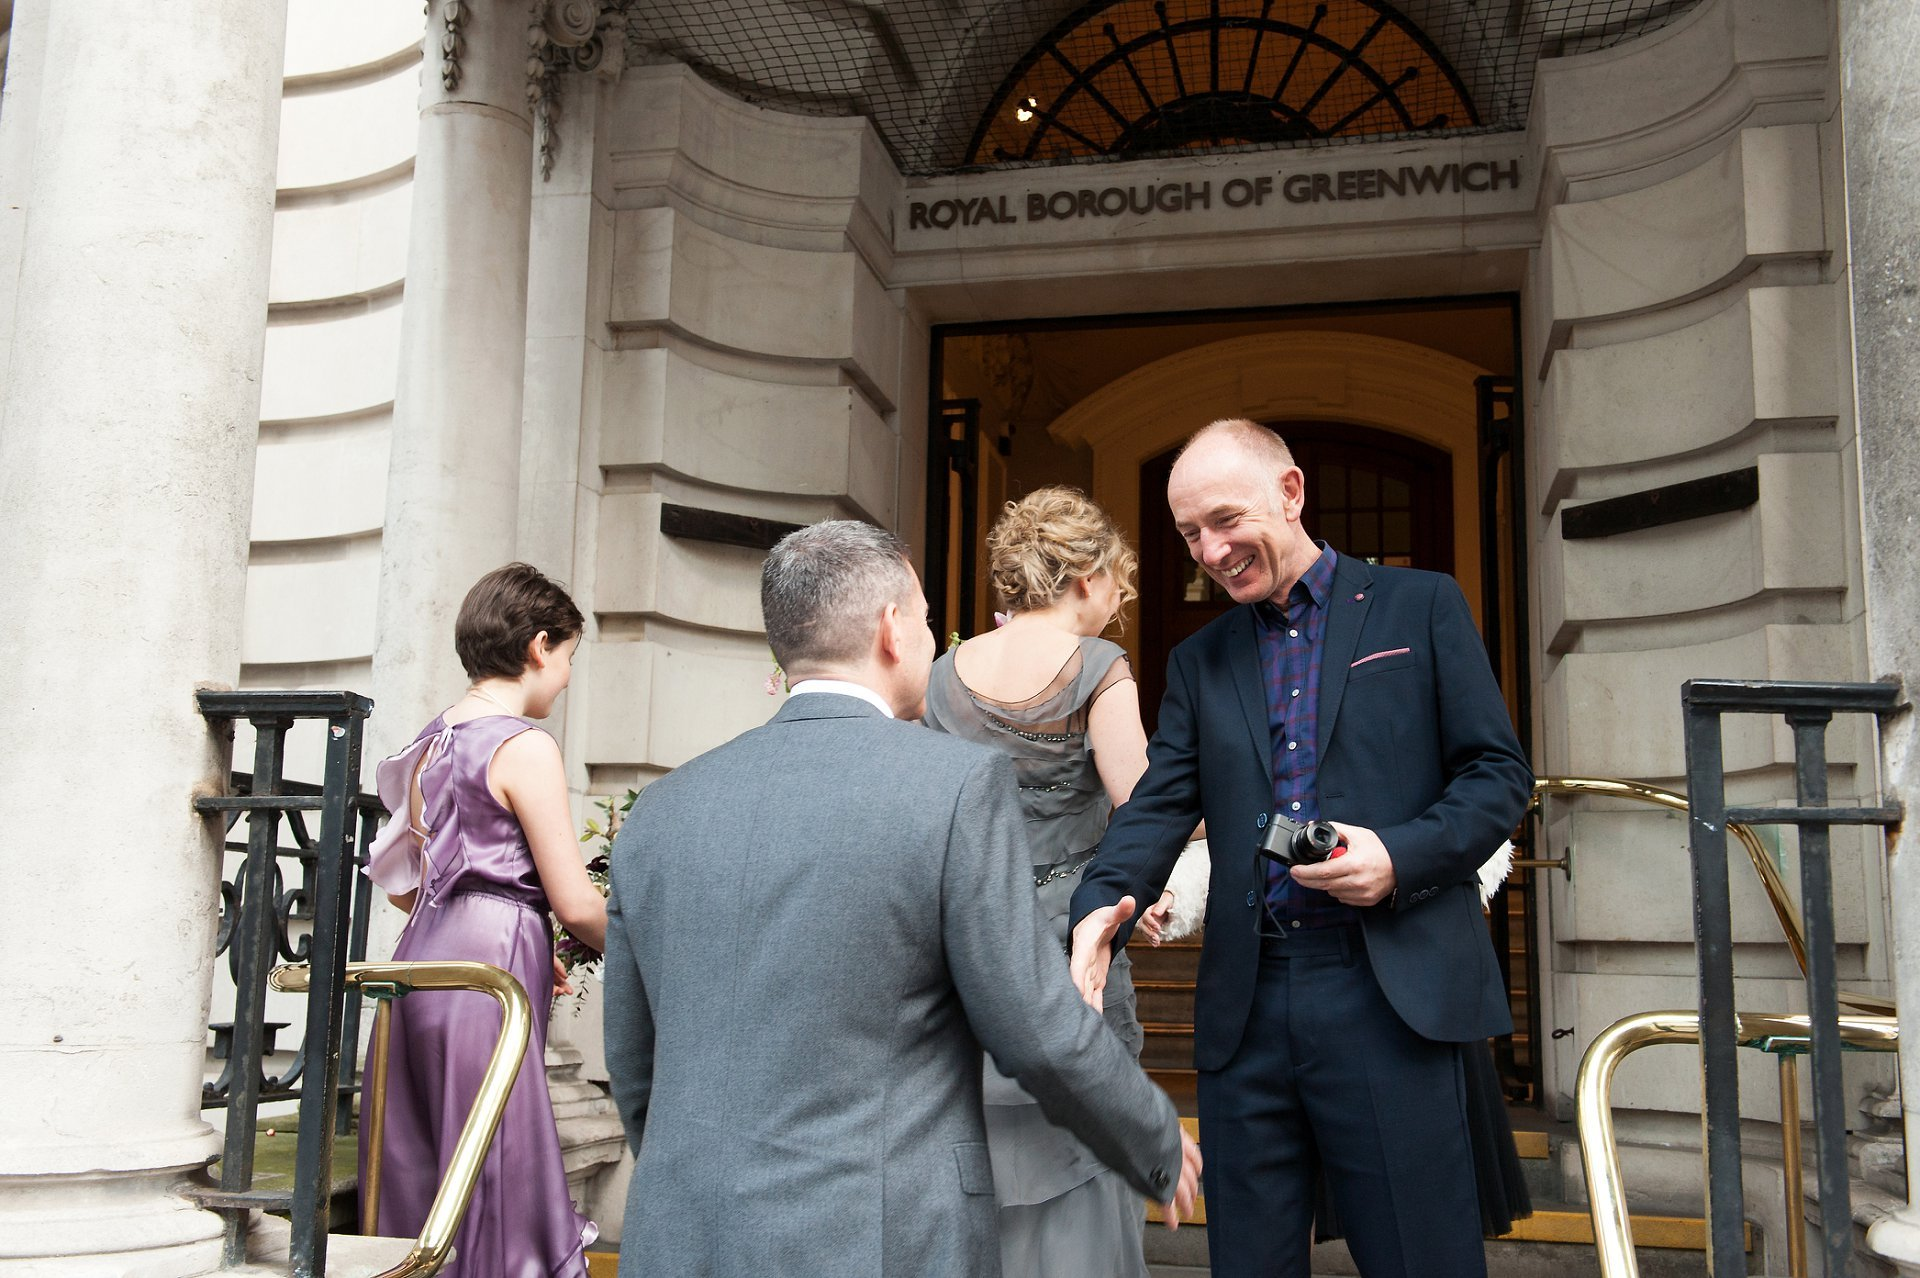 Bride & Groom greeted by guests outside Woolwich Town Hall